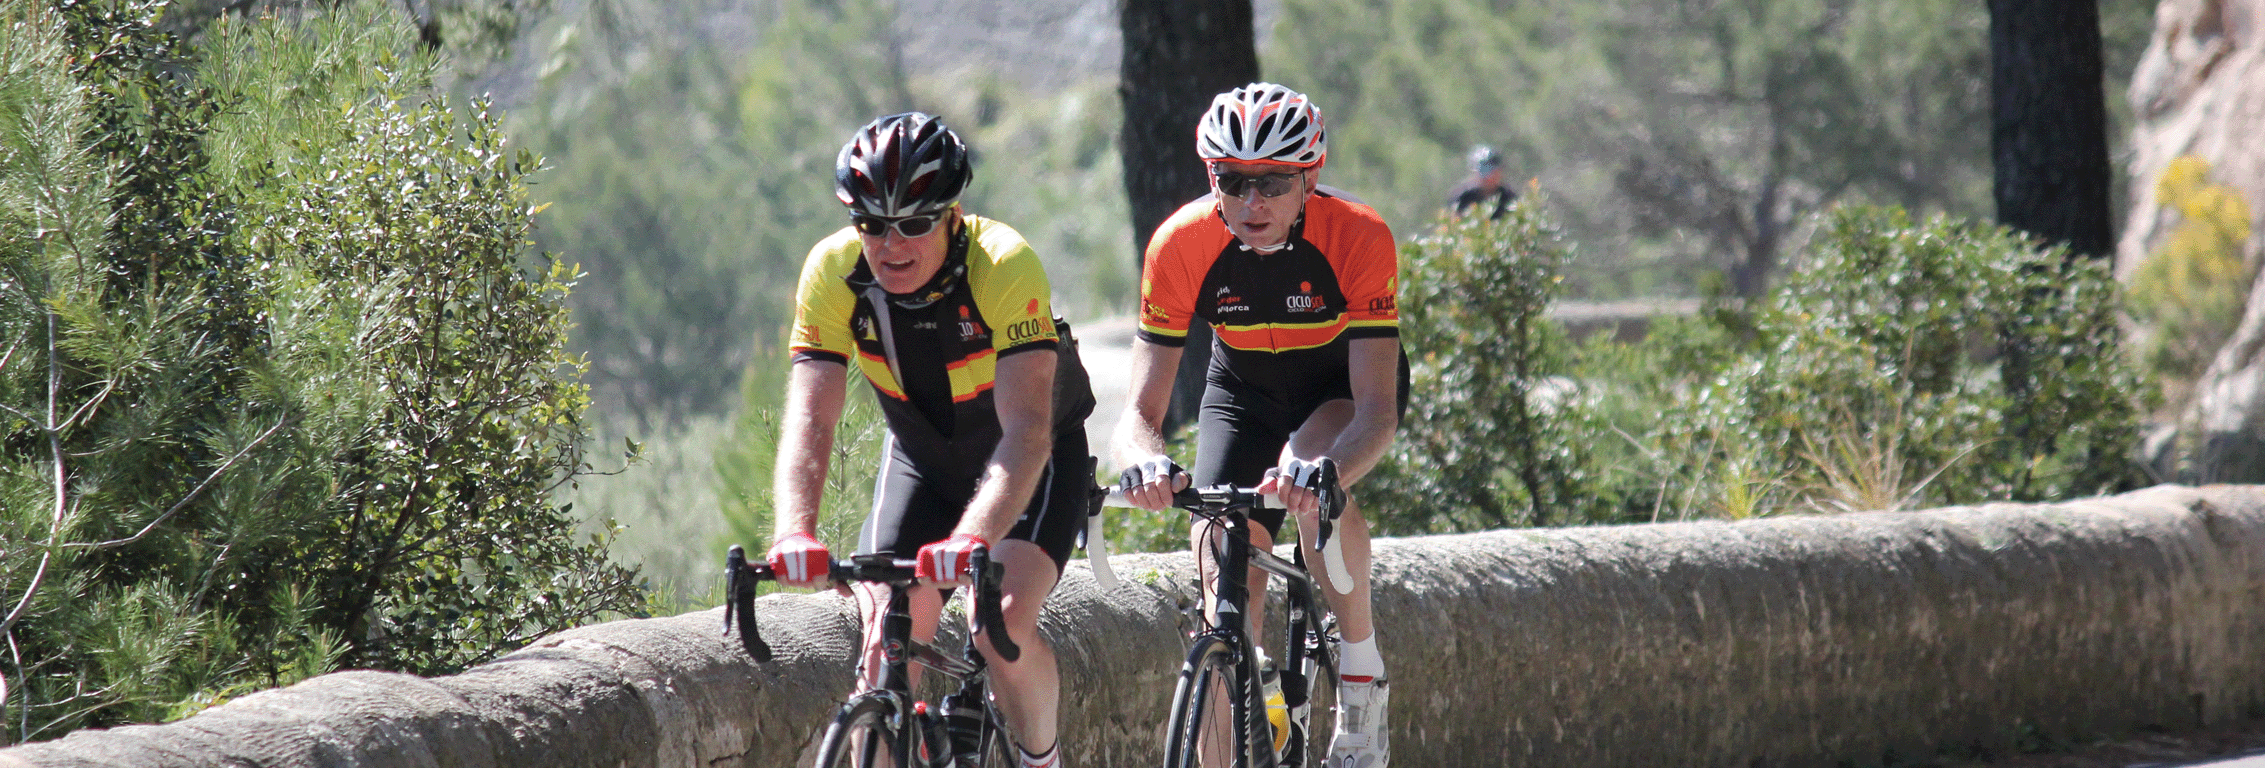 Ciclosol - Mallorca Cycle Camps 10